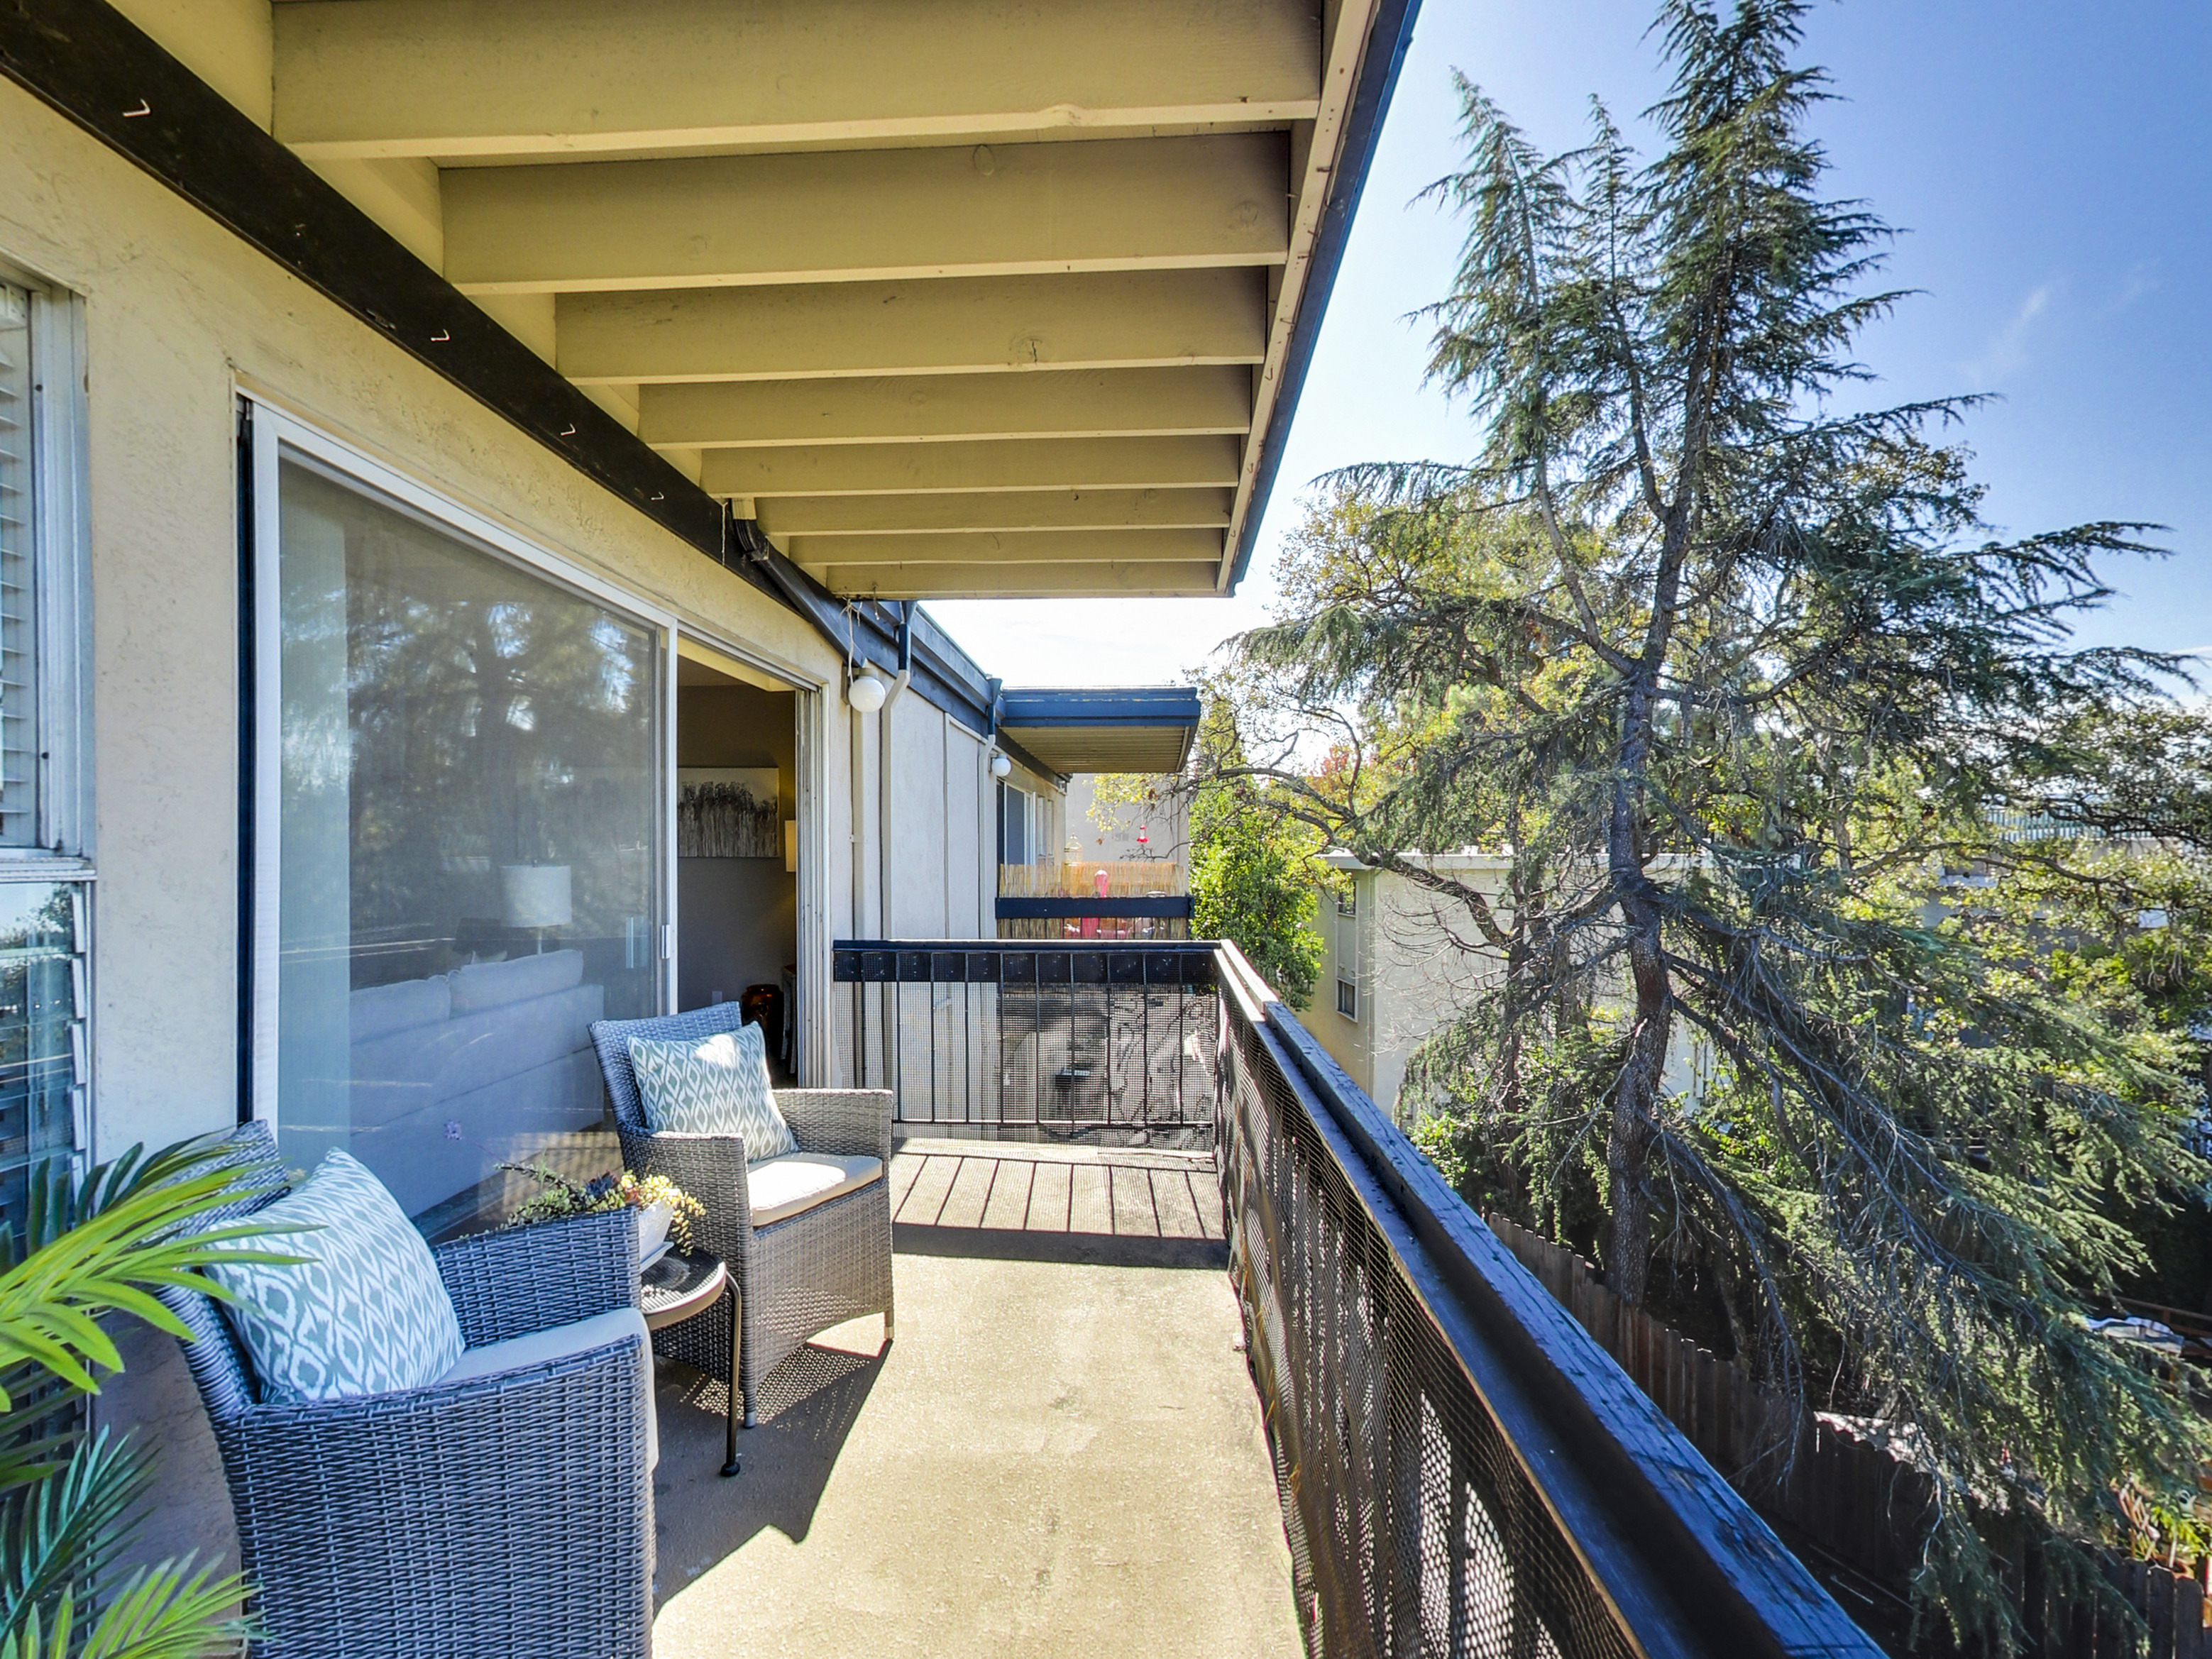 Image of Private Balcony for Vista Terrace